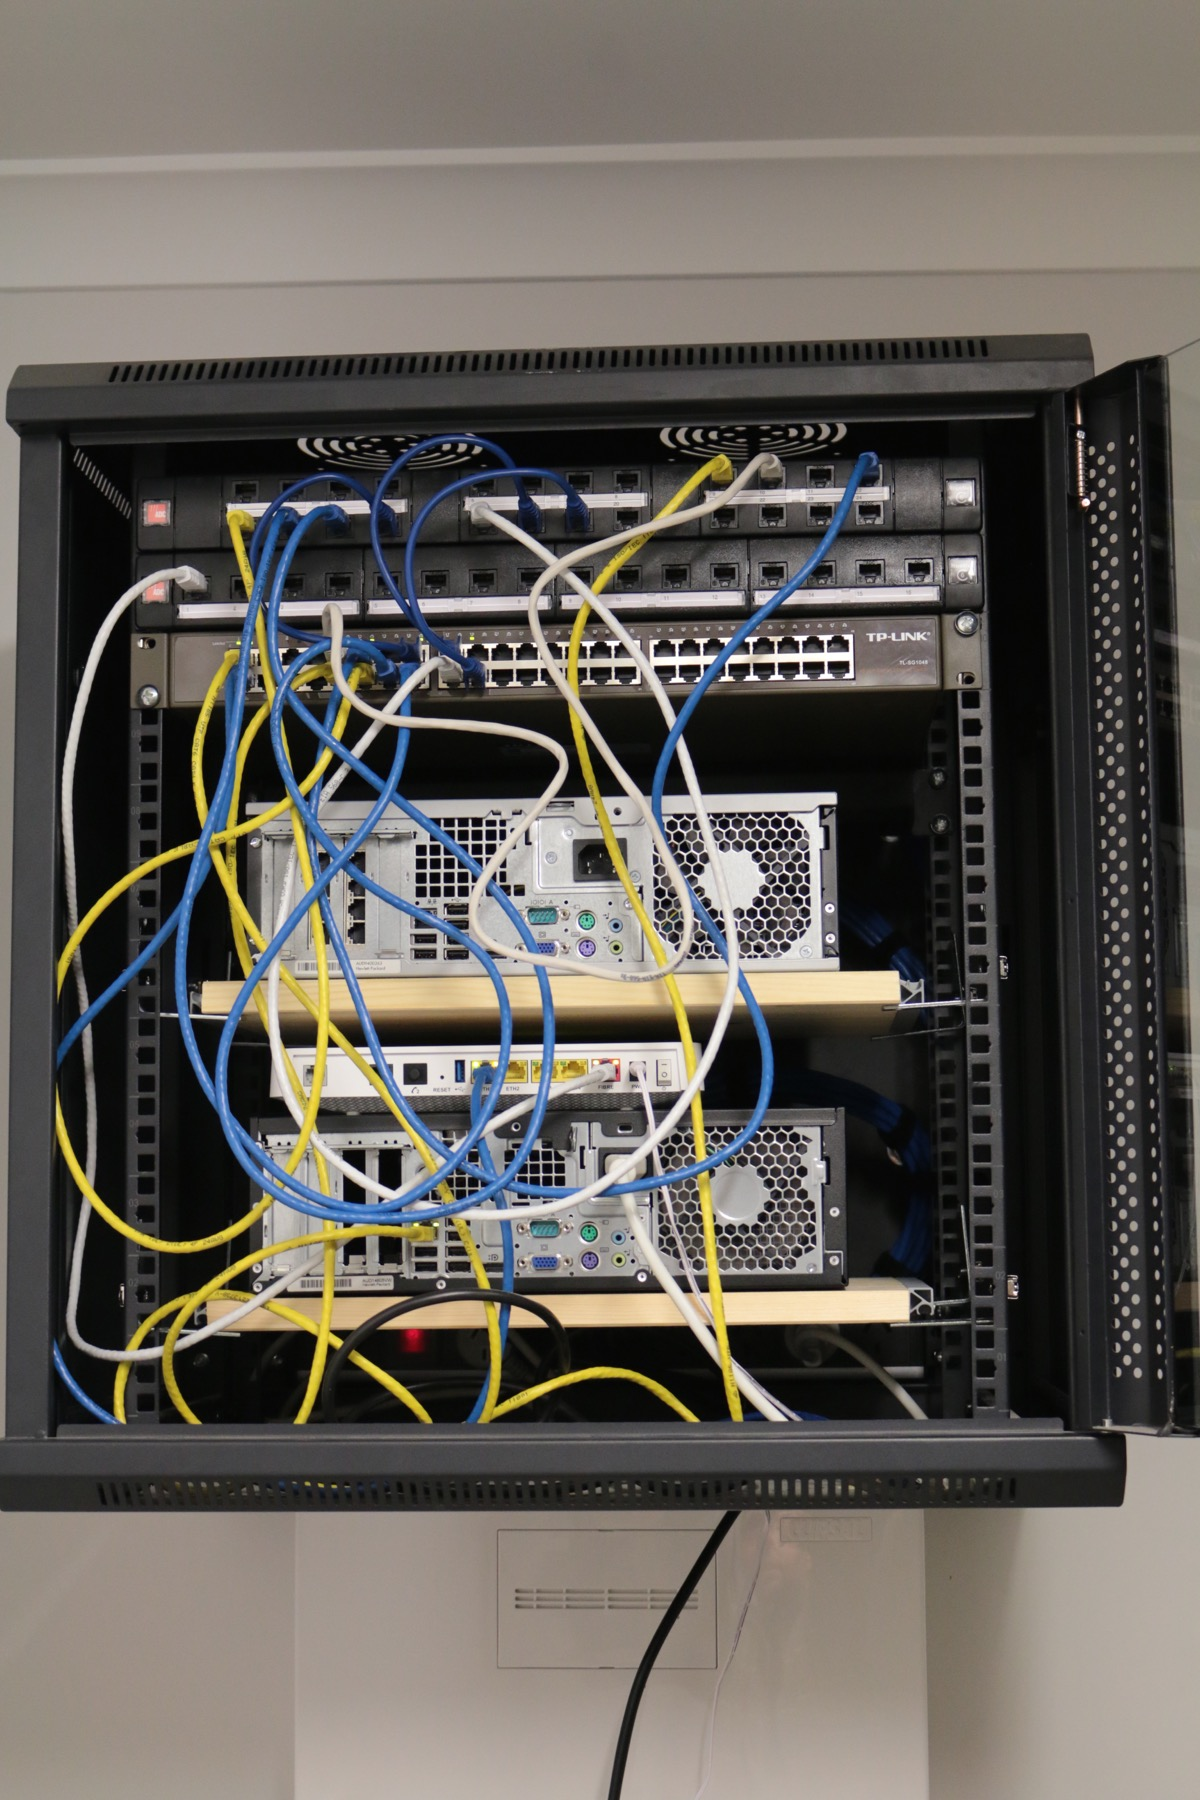 Wiring Diagram Together With Ether Cable On Network Patch Cable